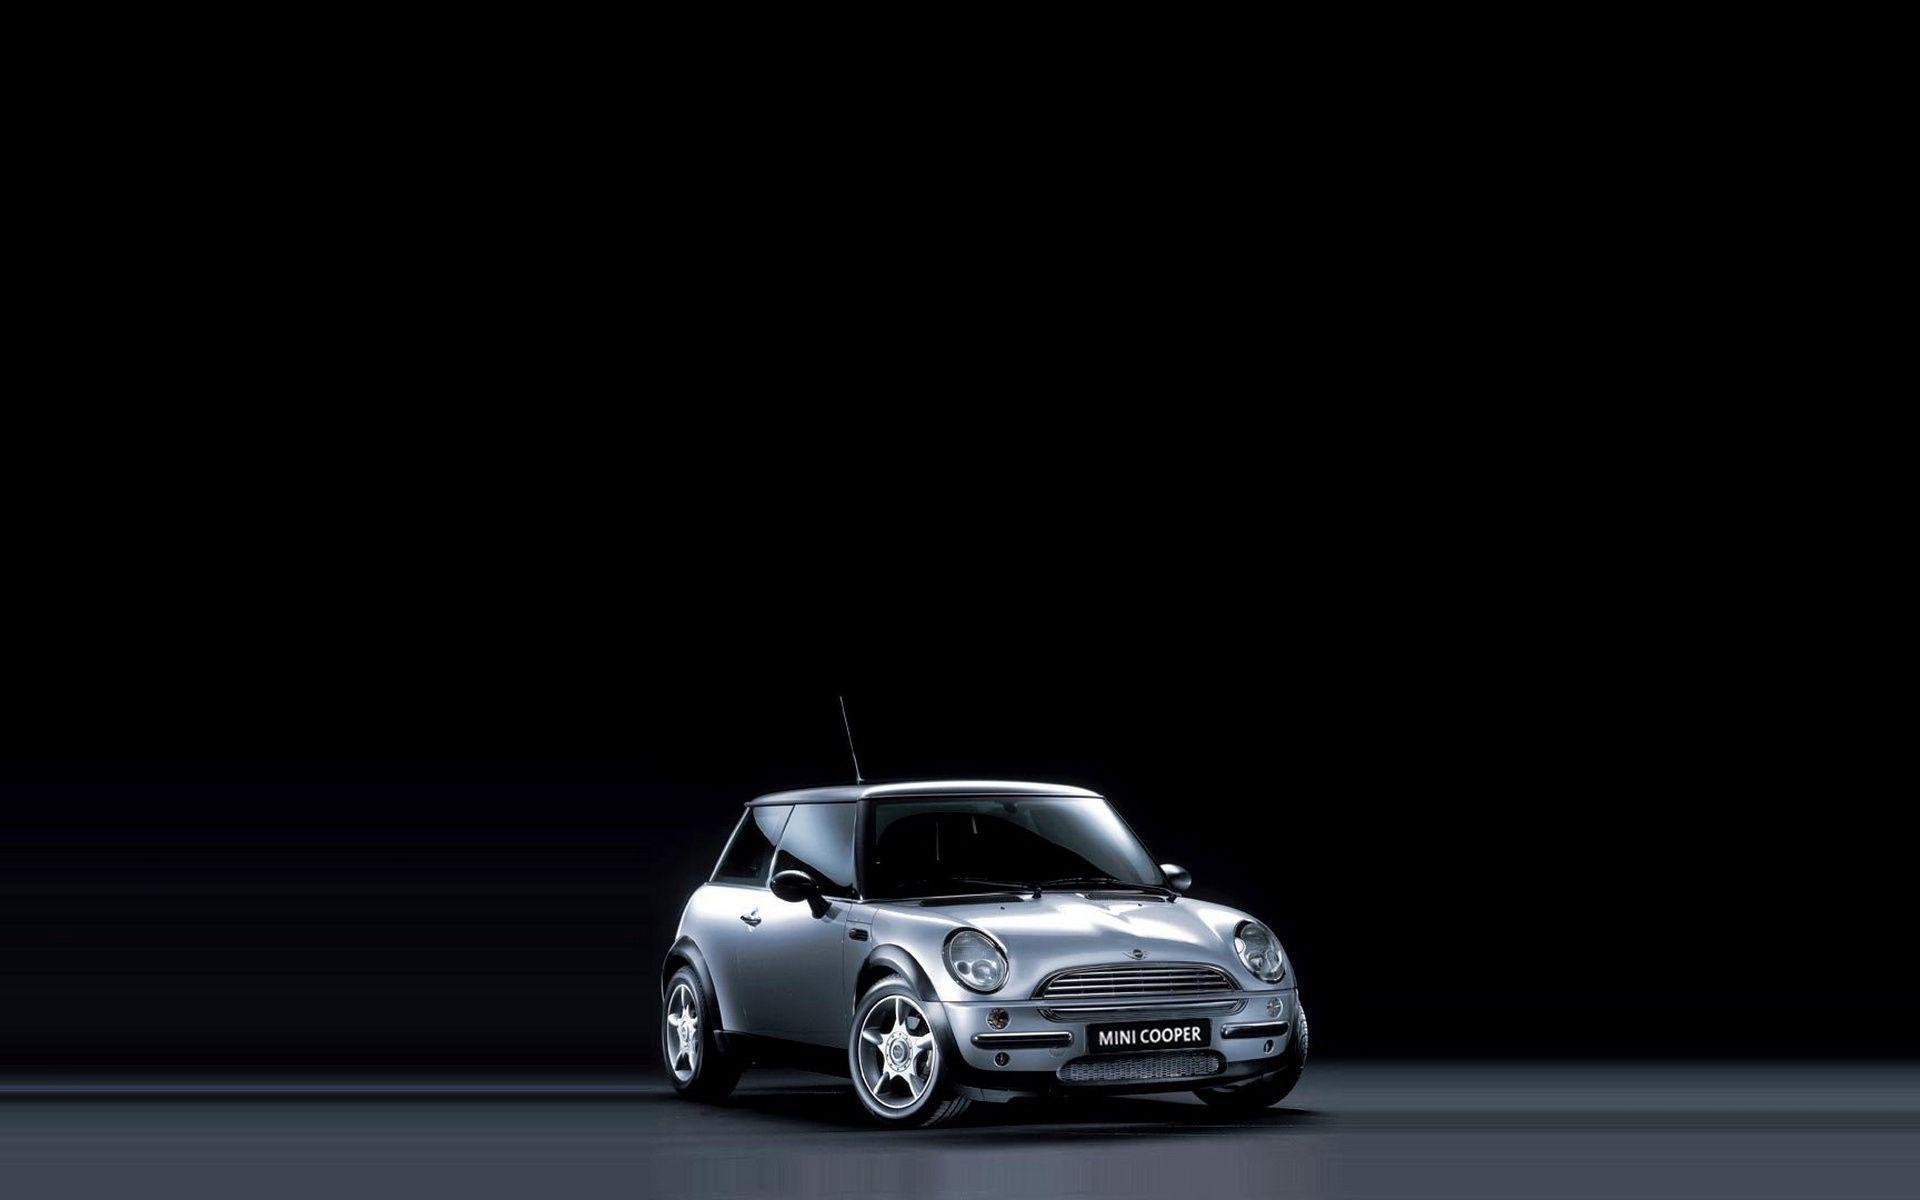 Mini Cooper Wallpapers HD Wallpapers